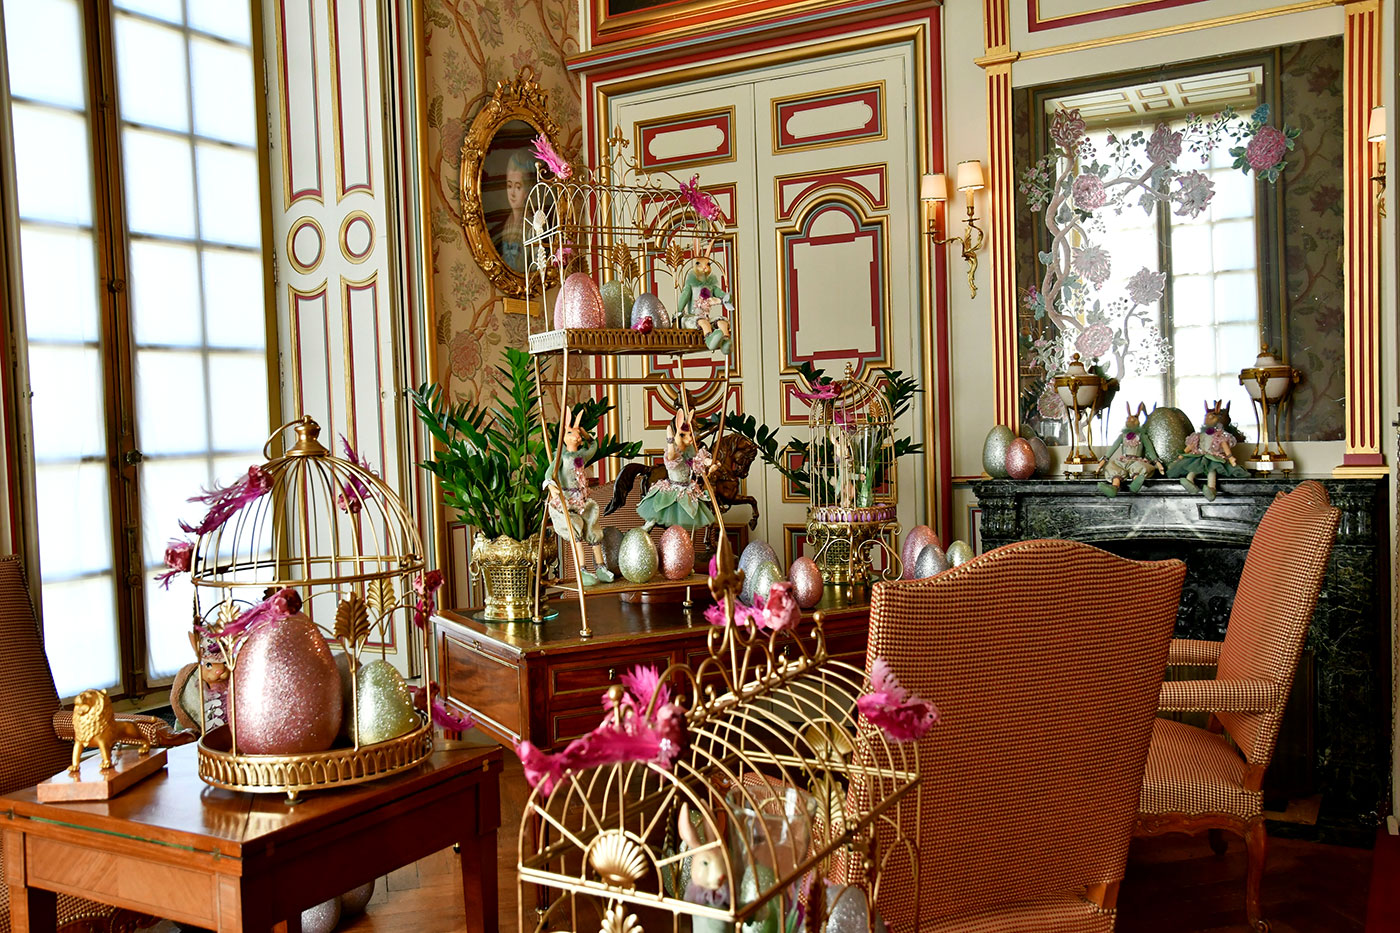 The Château de Cheverny is ready for Easter